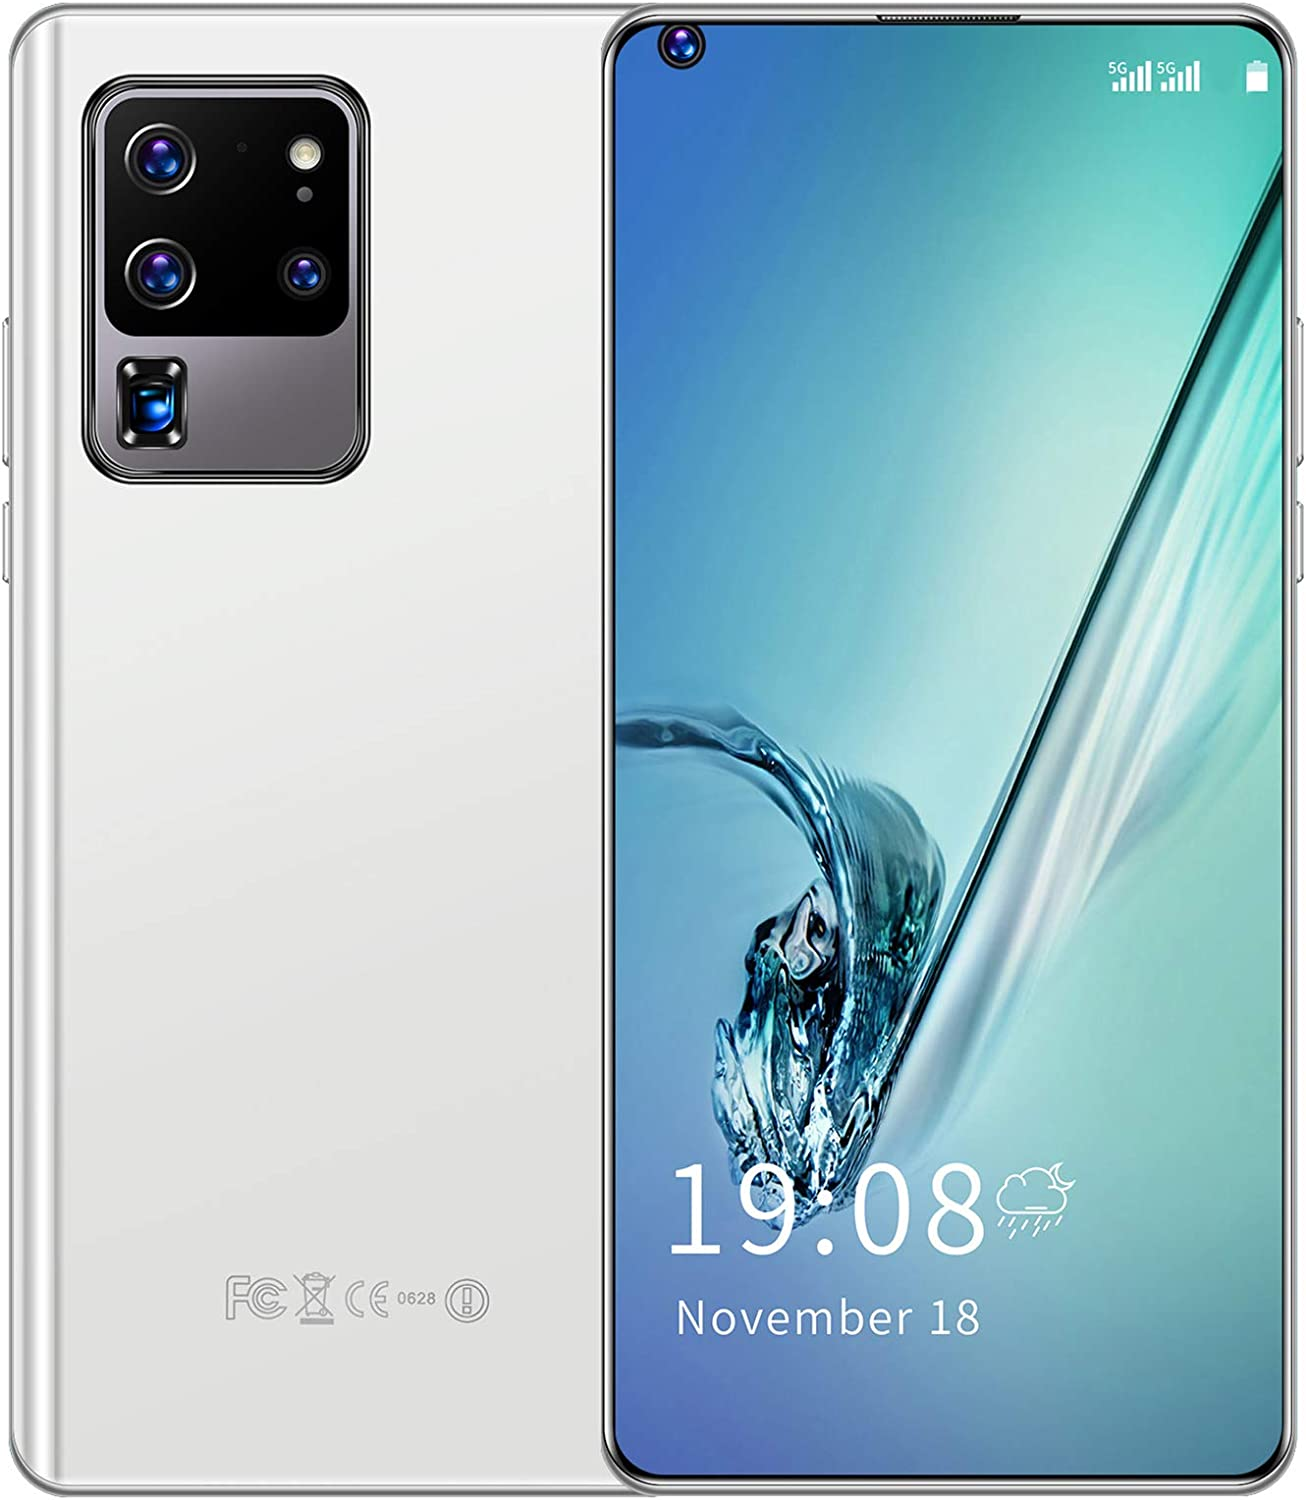 Unlocked Smartphones S30U PRO Android Manufacturer OFFicial Be super welcome shop 2GB+16GB Phones